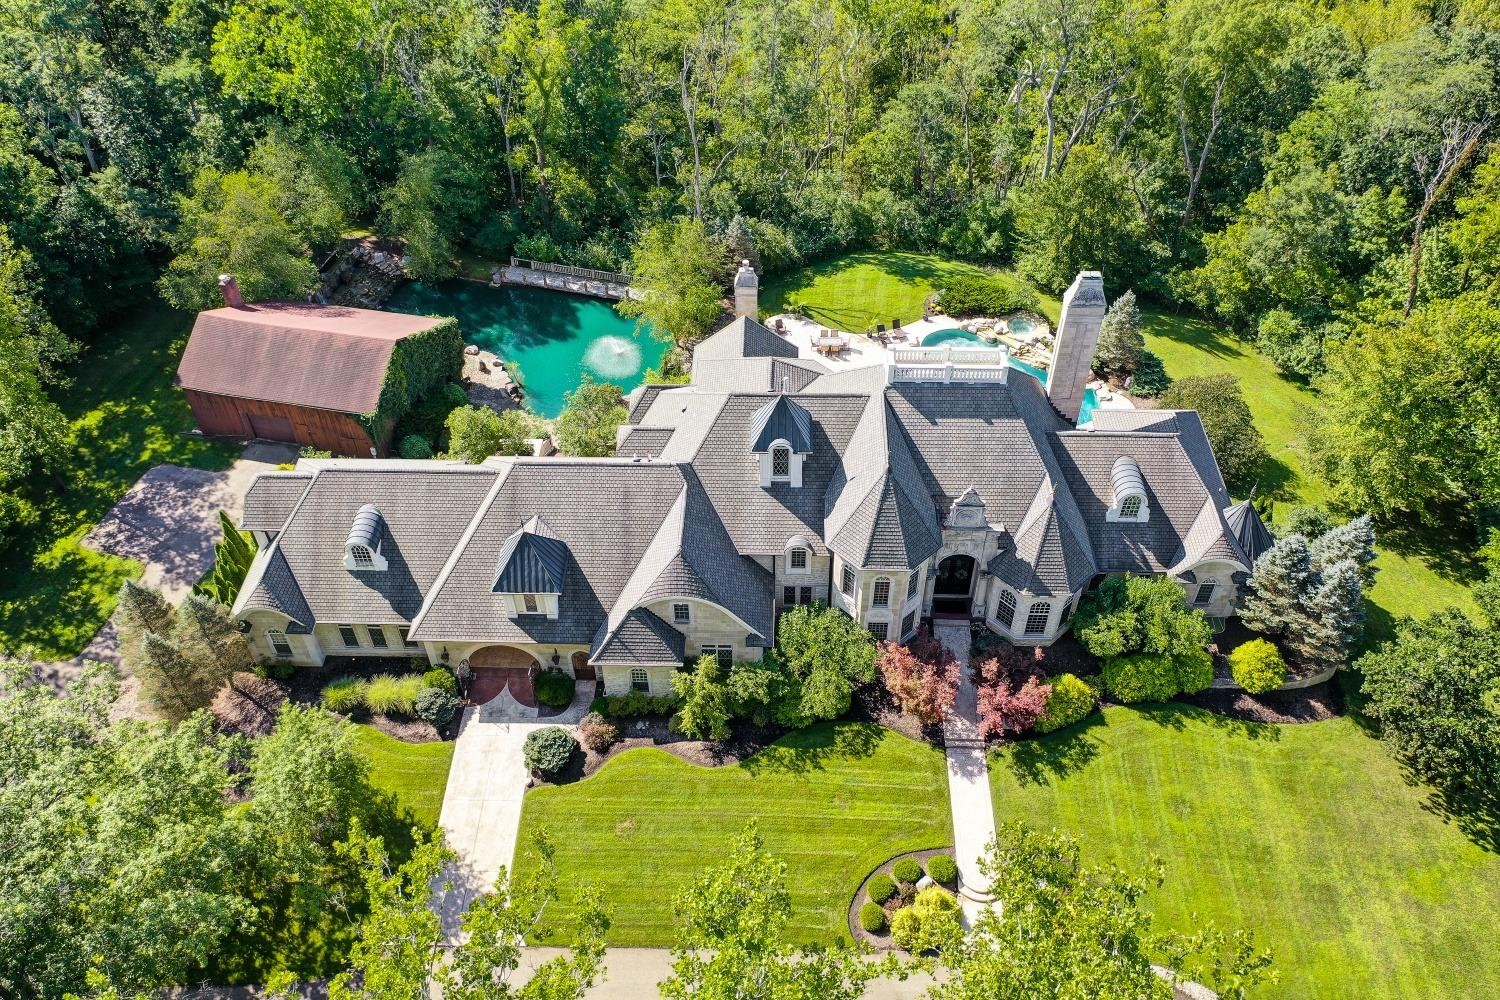 This exquisite estate was custom-built with the highest-quality materials and workmanship and sits on 5.8 acres with manicured beds and mature trees.